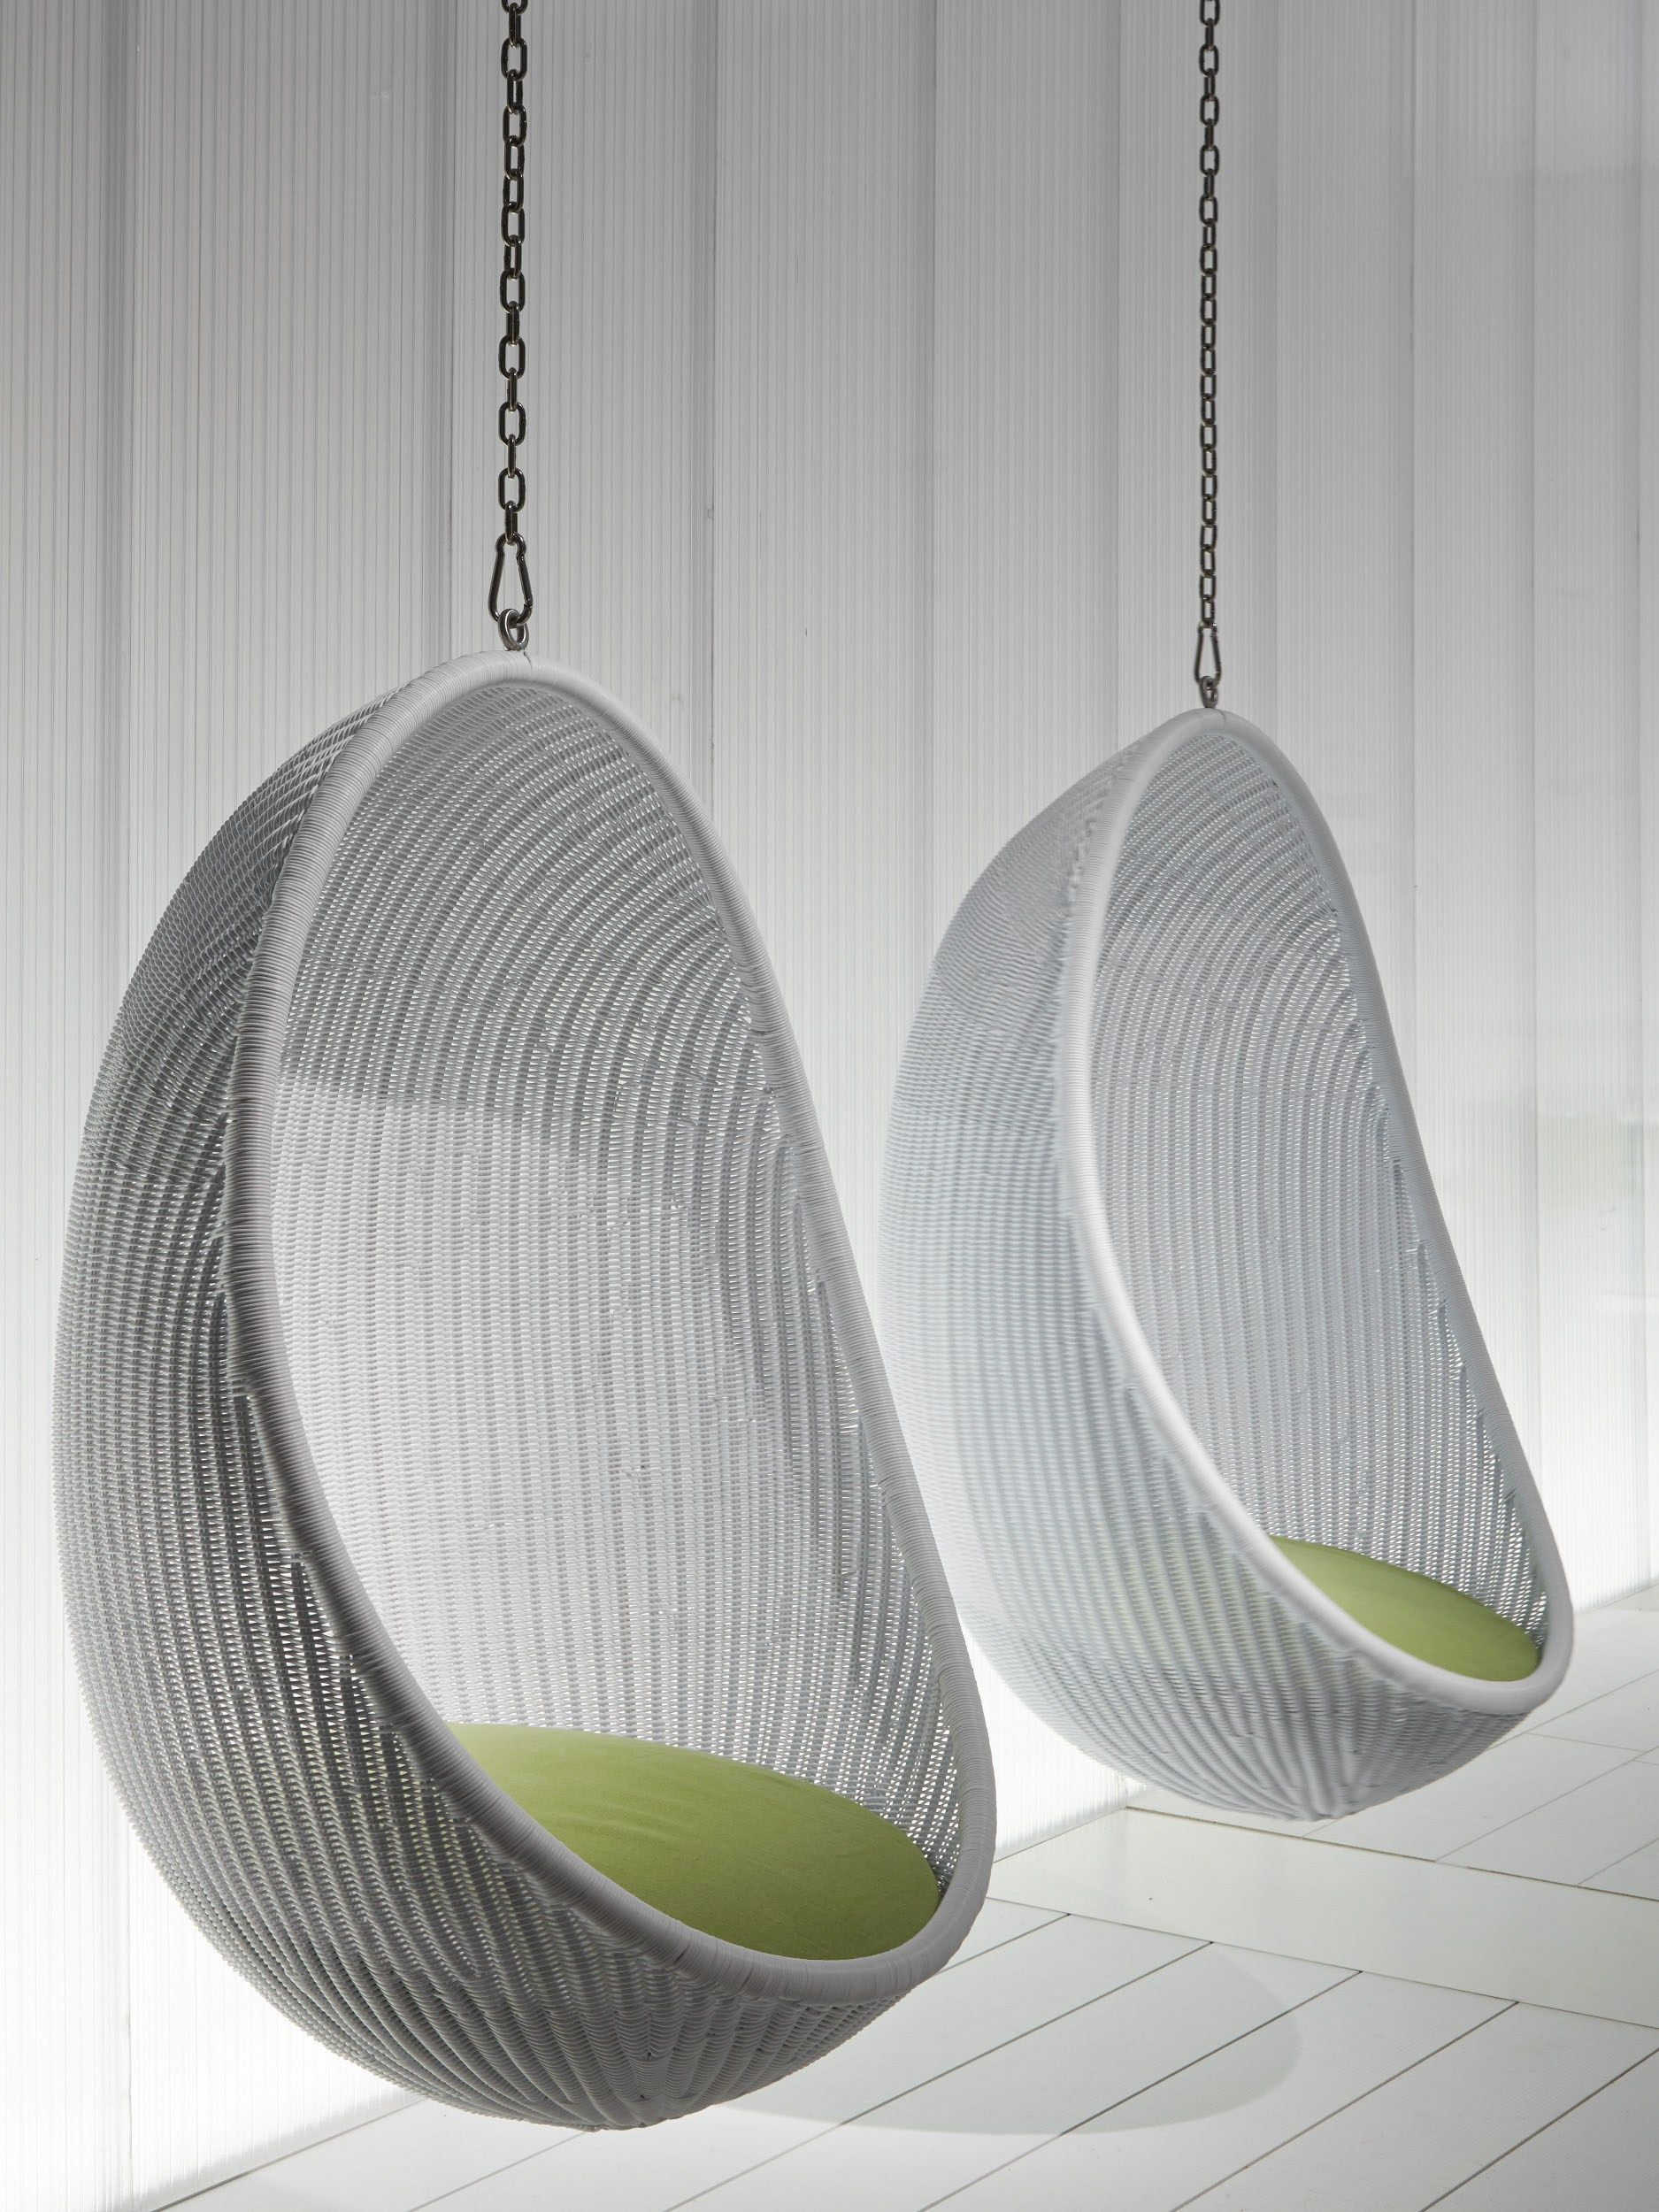 Egg Chair Hanging From Ceiling Furniture Nice Looking White Woven Rattan Two Hanging Egg